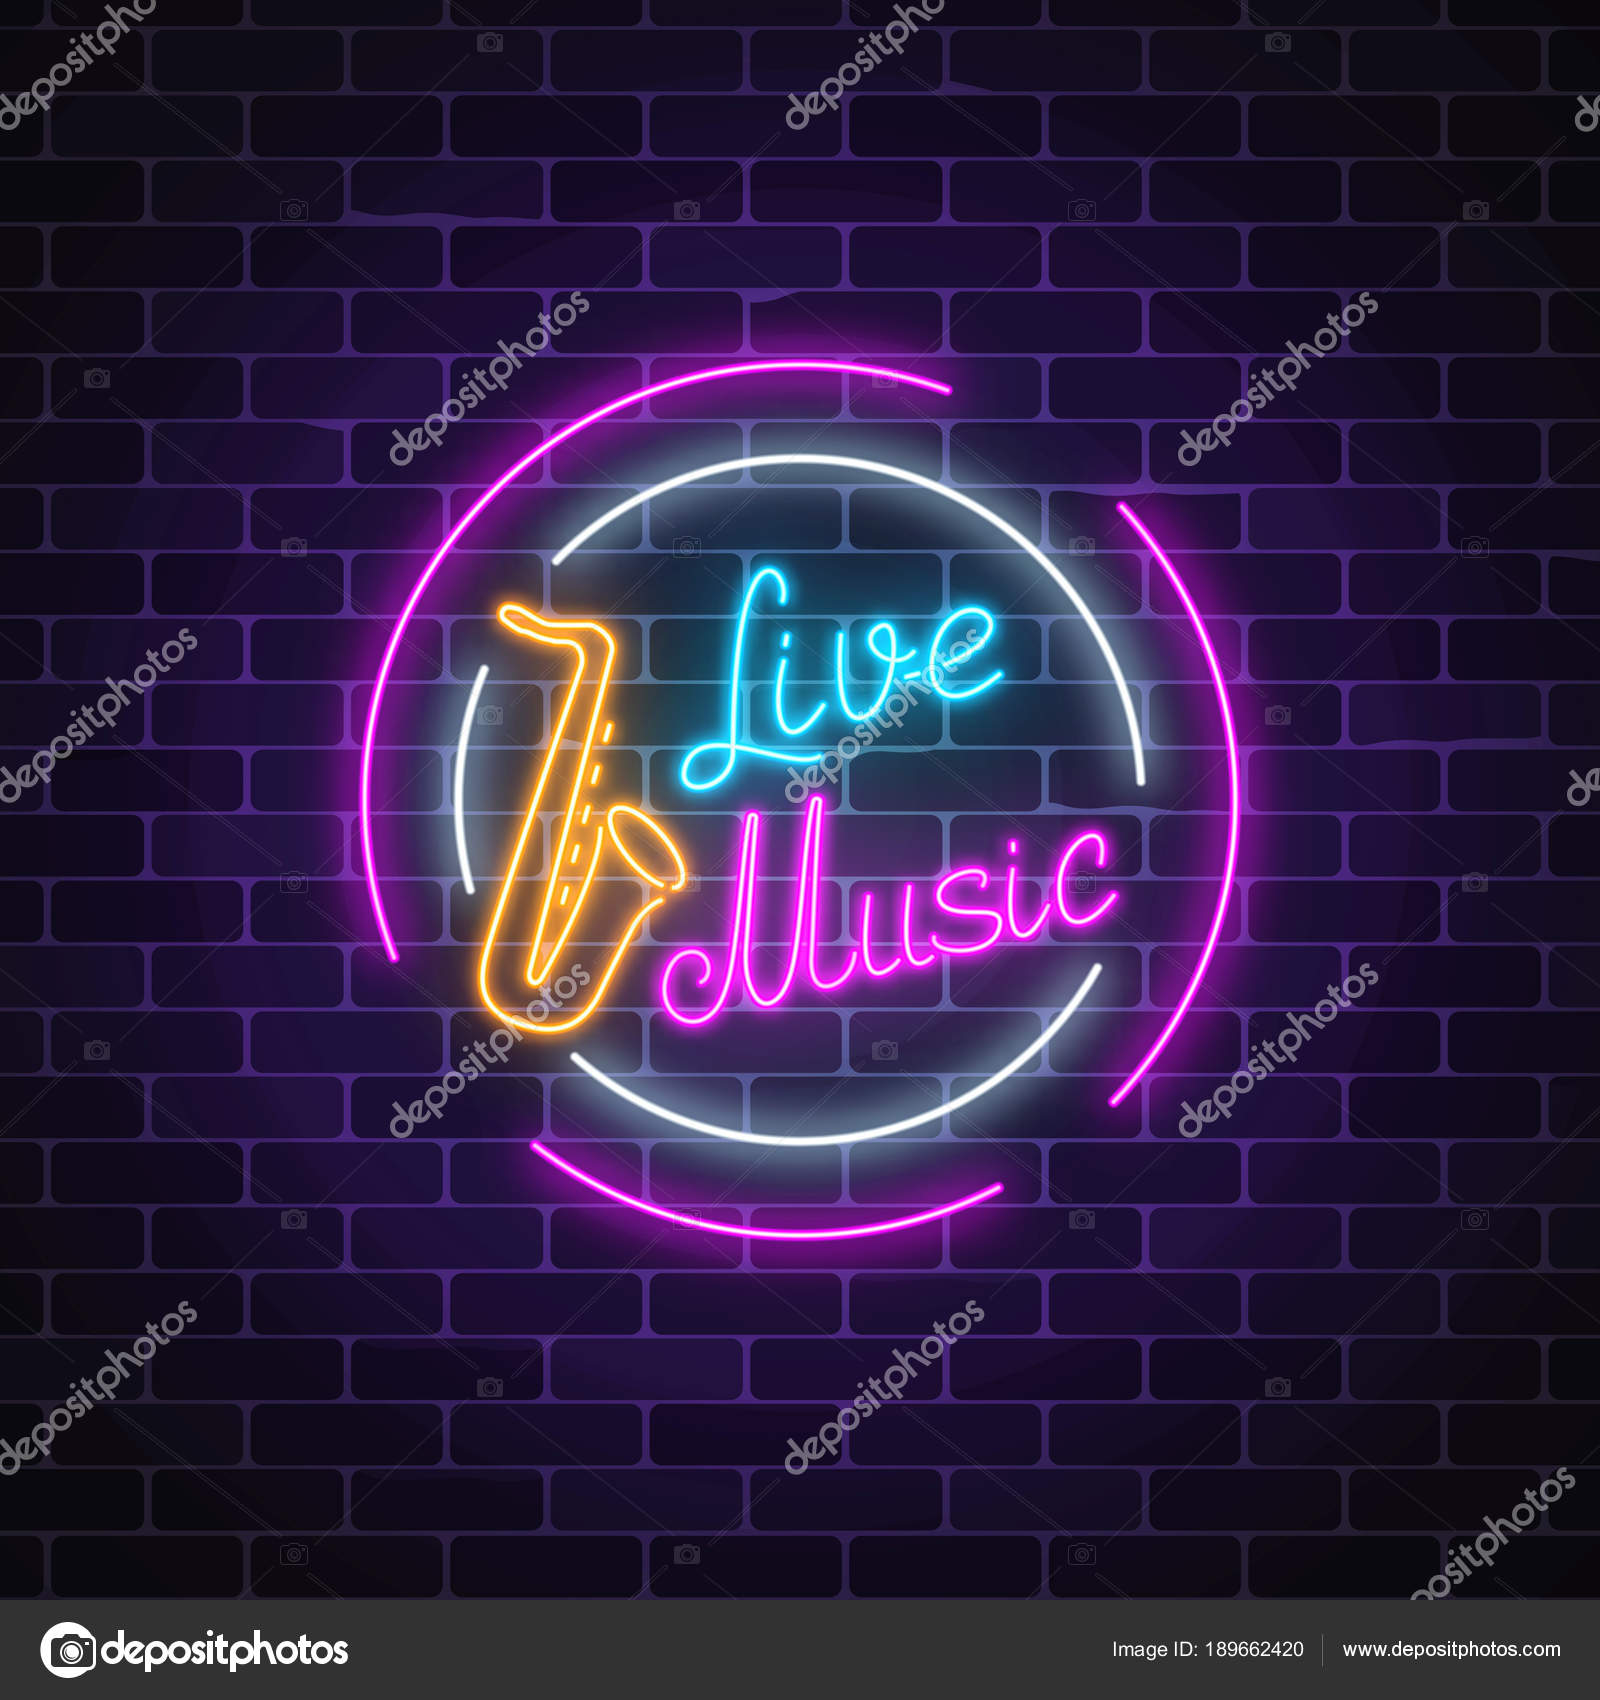 EL LOGO DE LA SEMANA - Página 3 Depositphotos_189662420-stock-illustration-neon-sign-of-bar-with